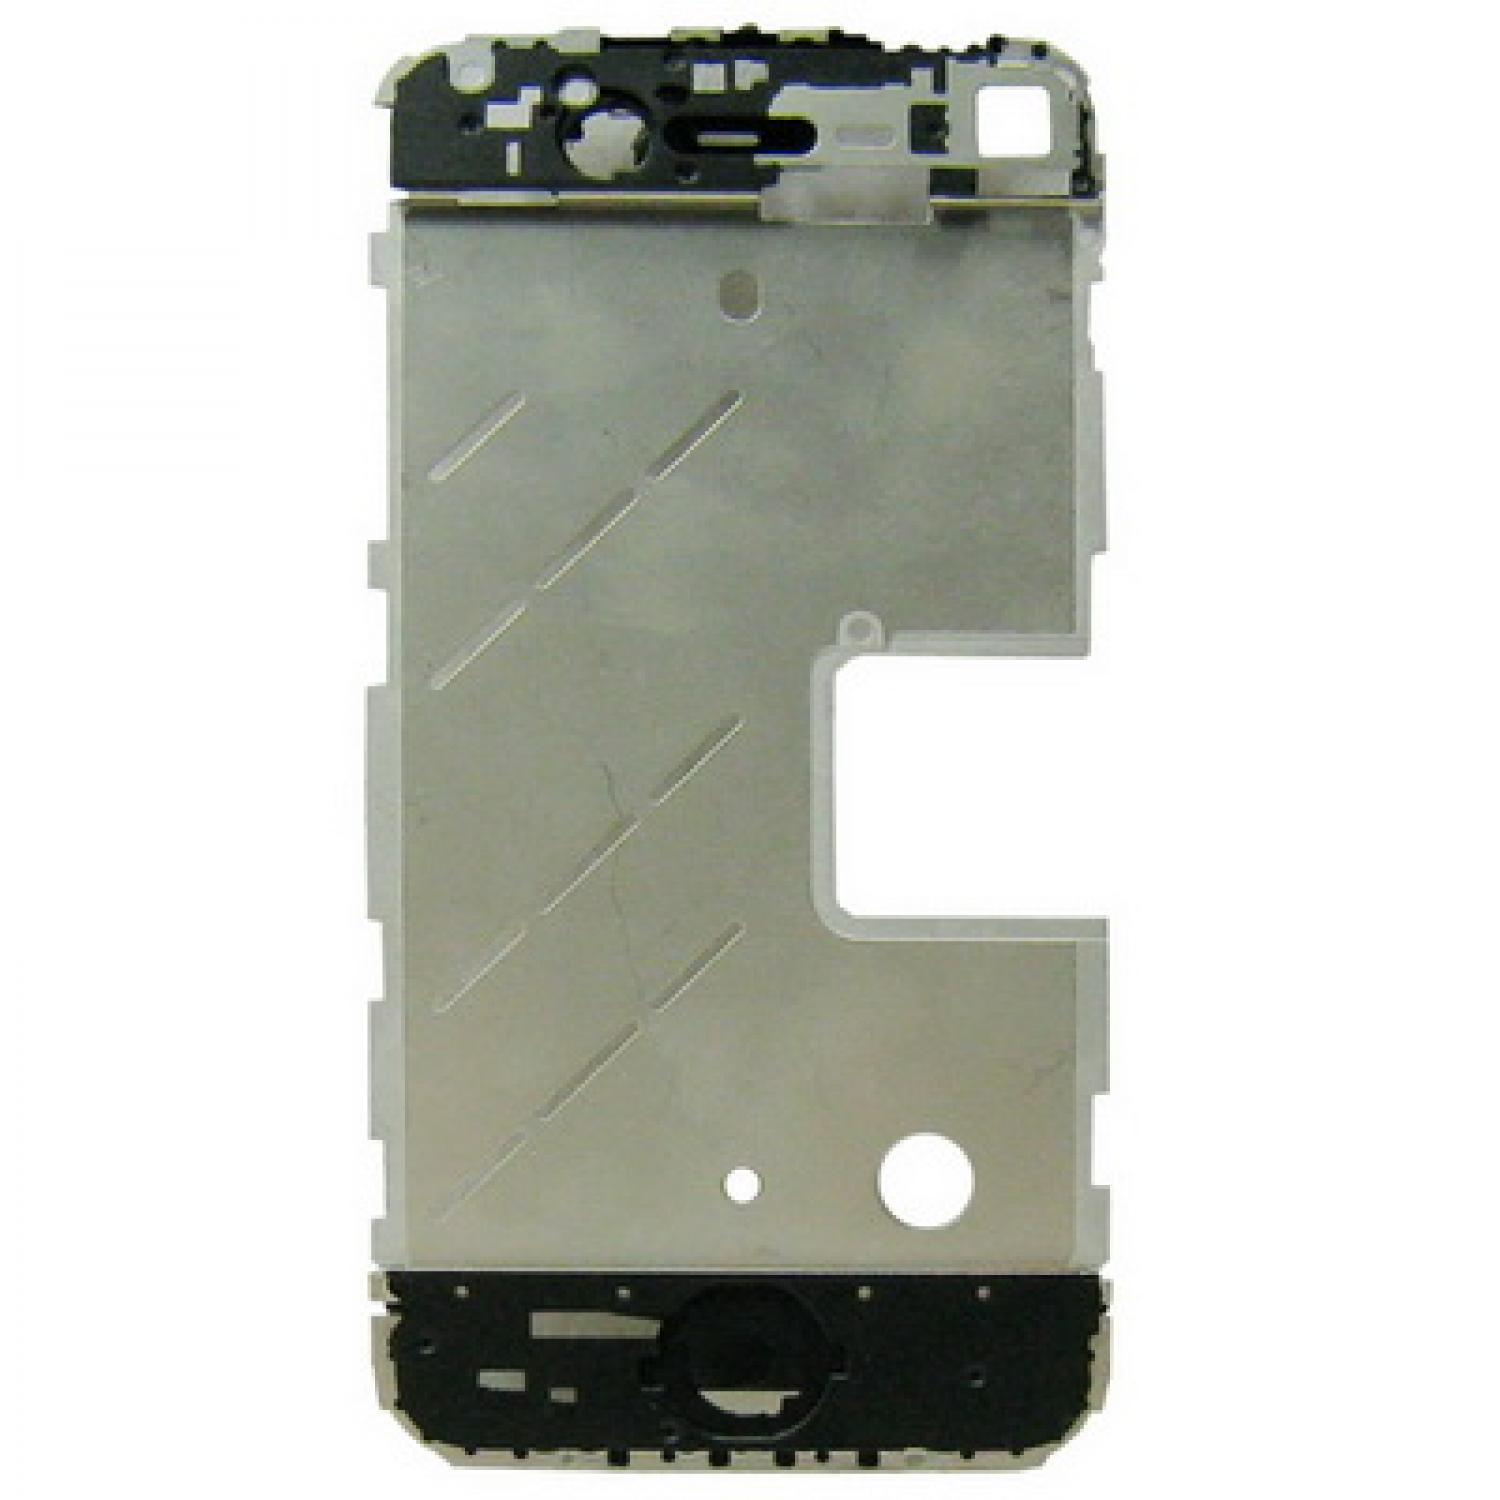 Middle Board for iPhone 4G Original